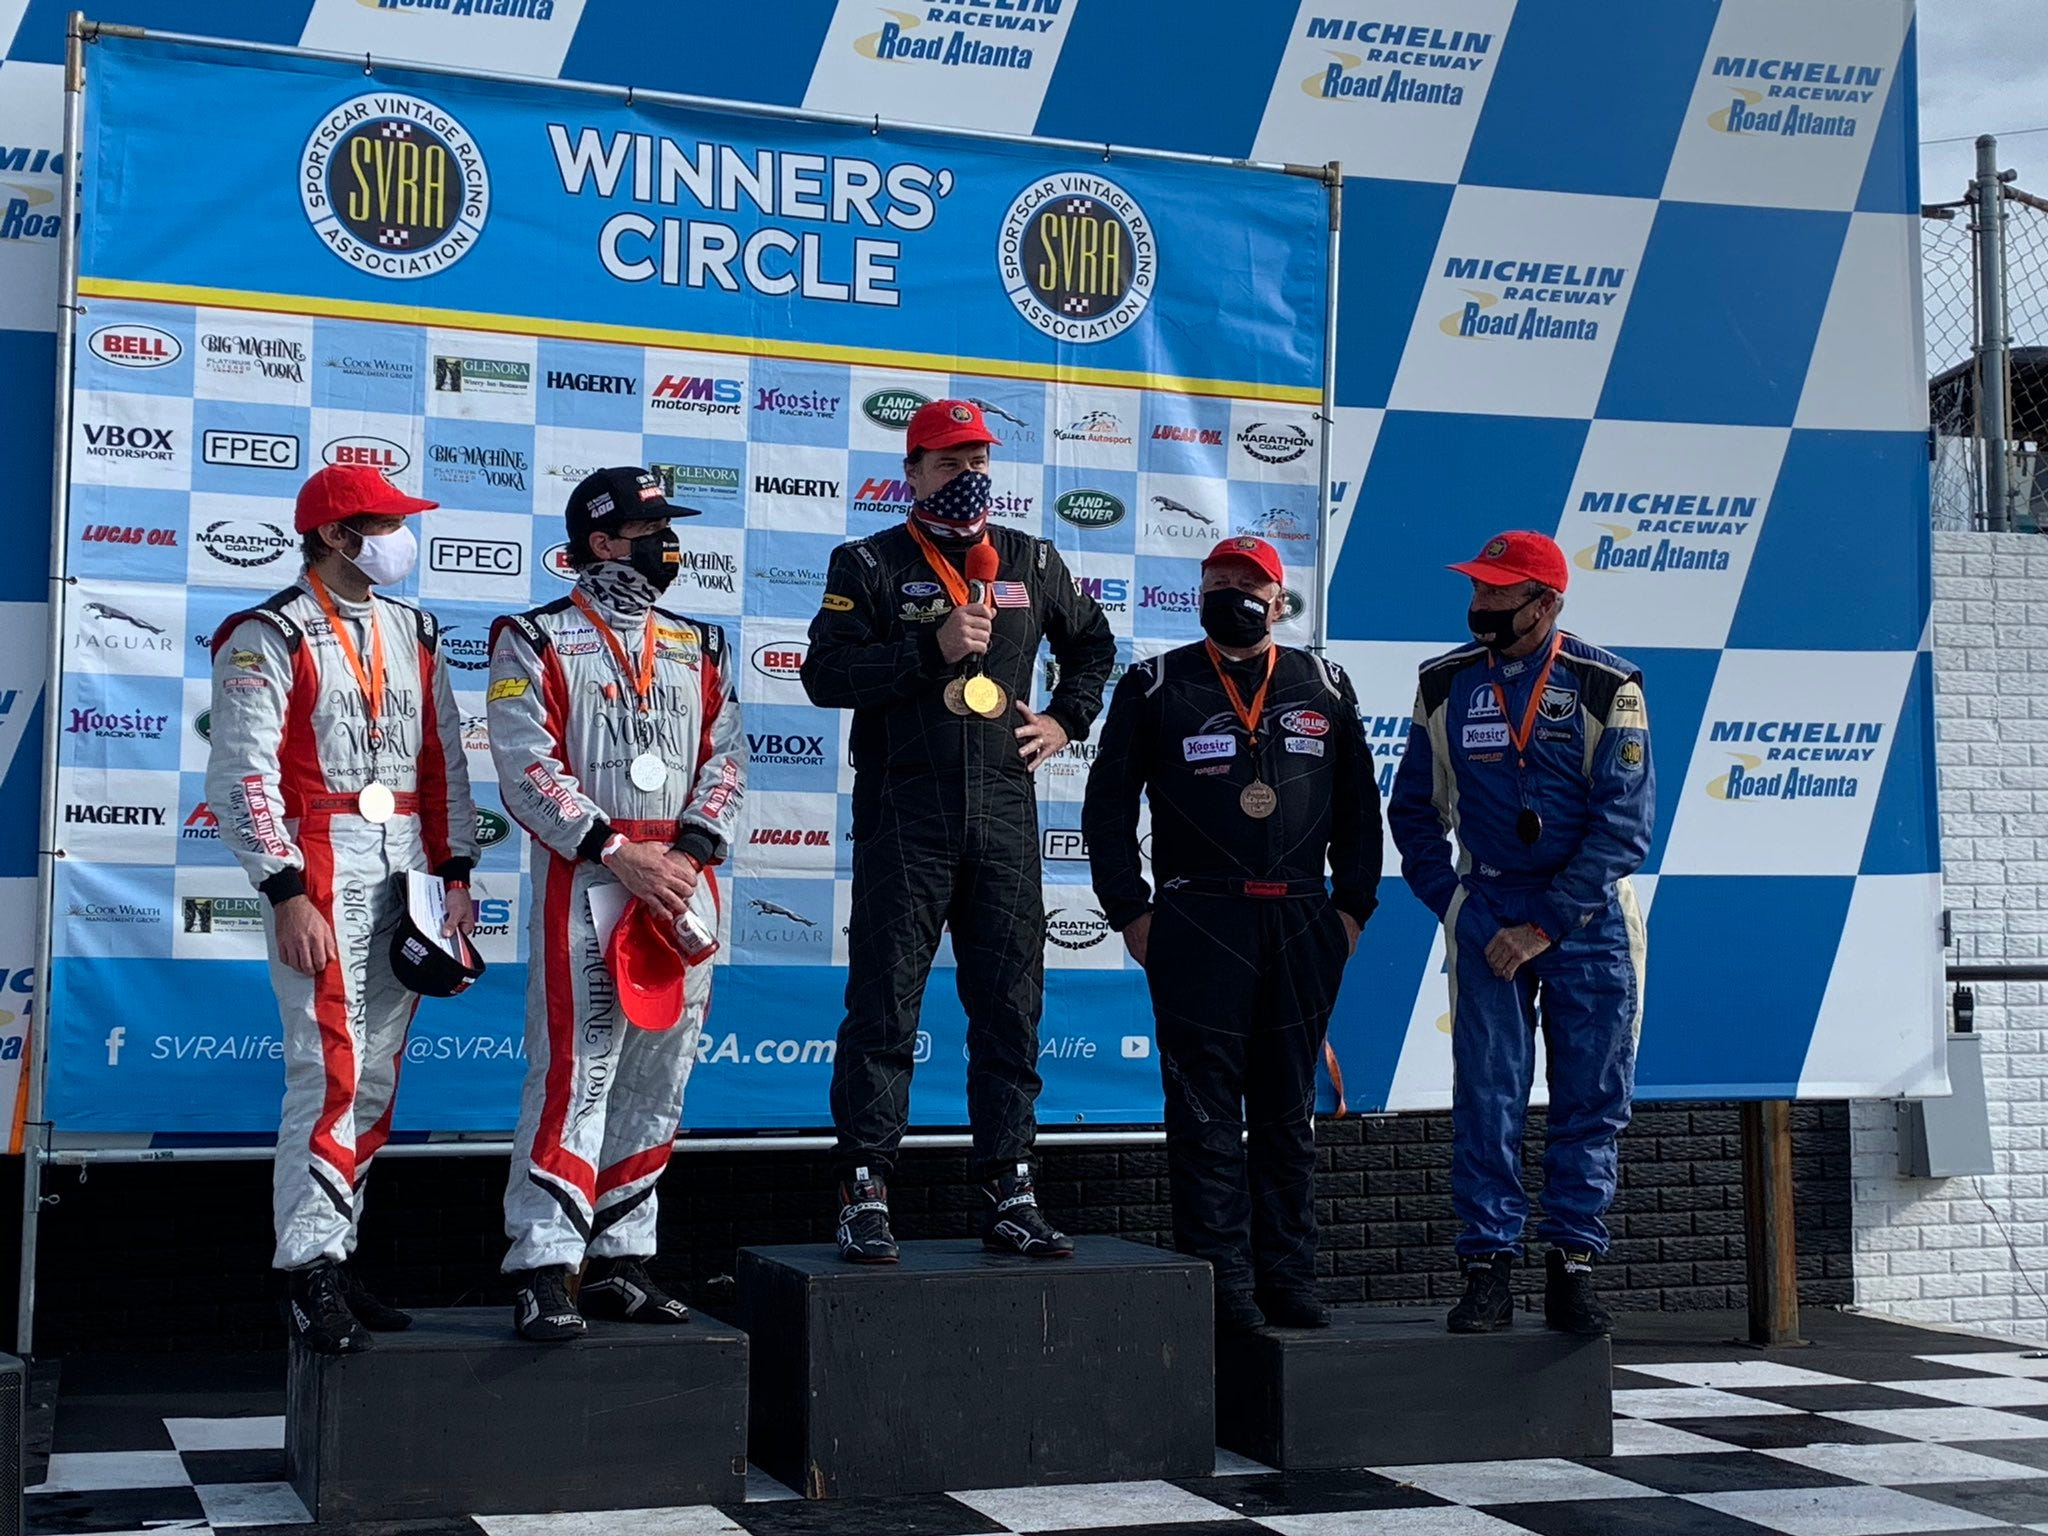 Ford CEO Jim Farley, center, takes first place in the endurance race at the Road Atlanta Grand Prix on Nov. 22. He stands alone on the podium because he raced solo while the other teams each raced the course with two drivers.